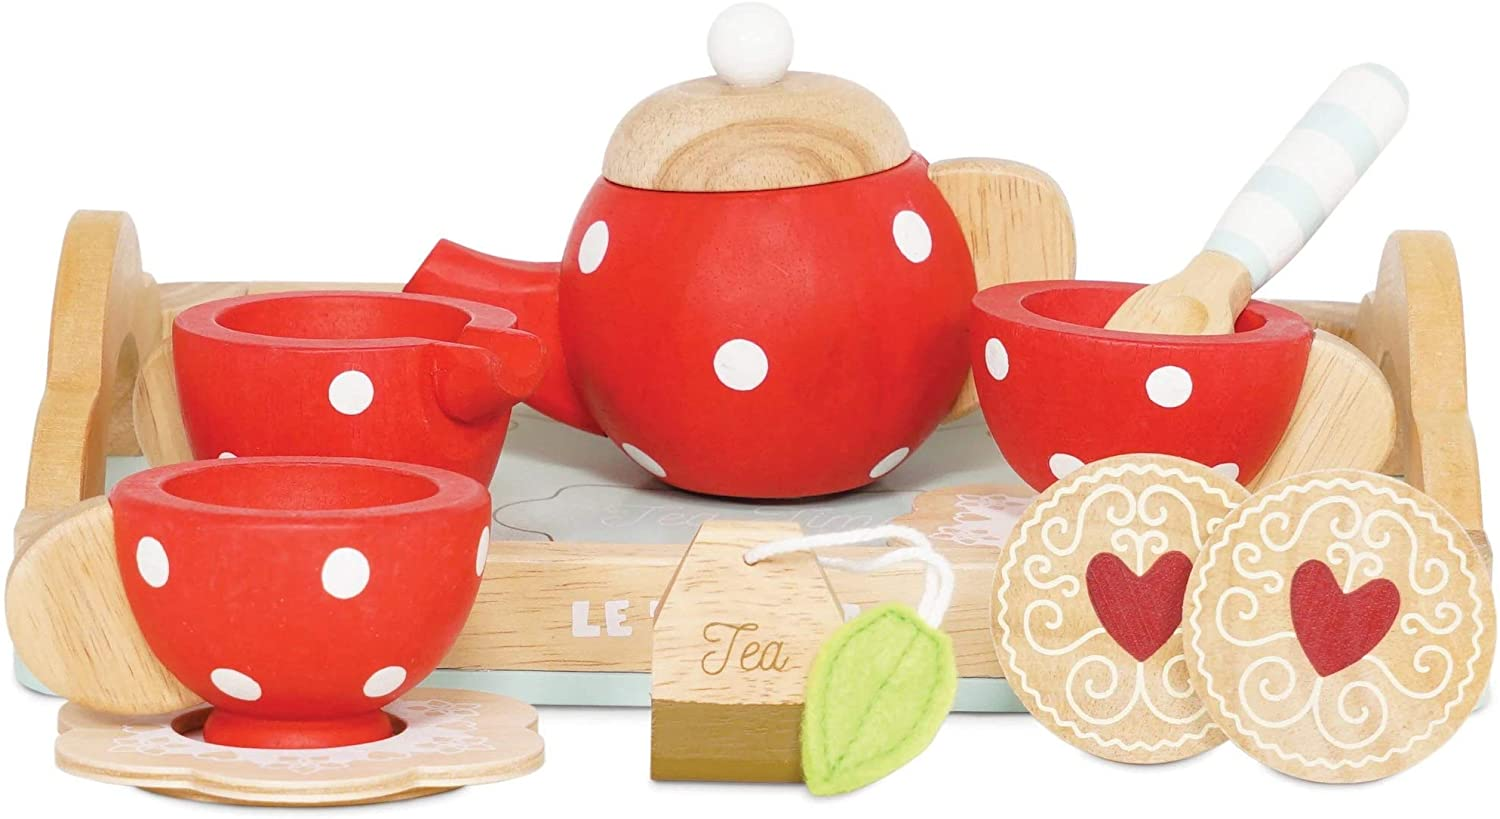 Le Toy Van Honeybake Collection Tea Set - Strawberry Design Premium Wooden Toys for Kids Ages 3 years & Up (TV276)